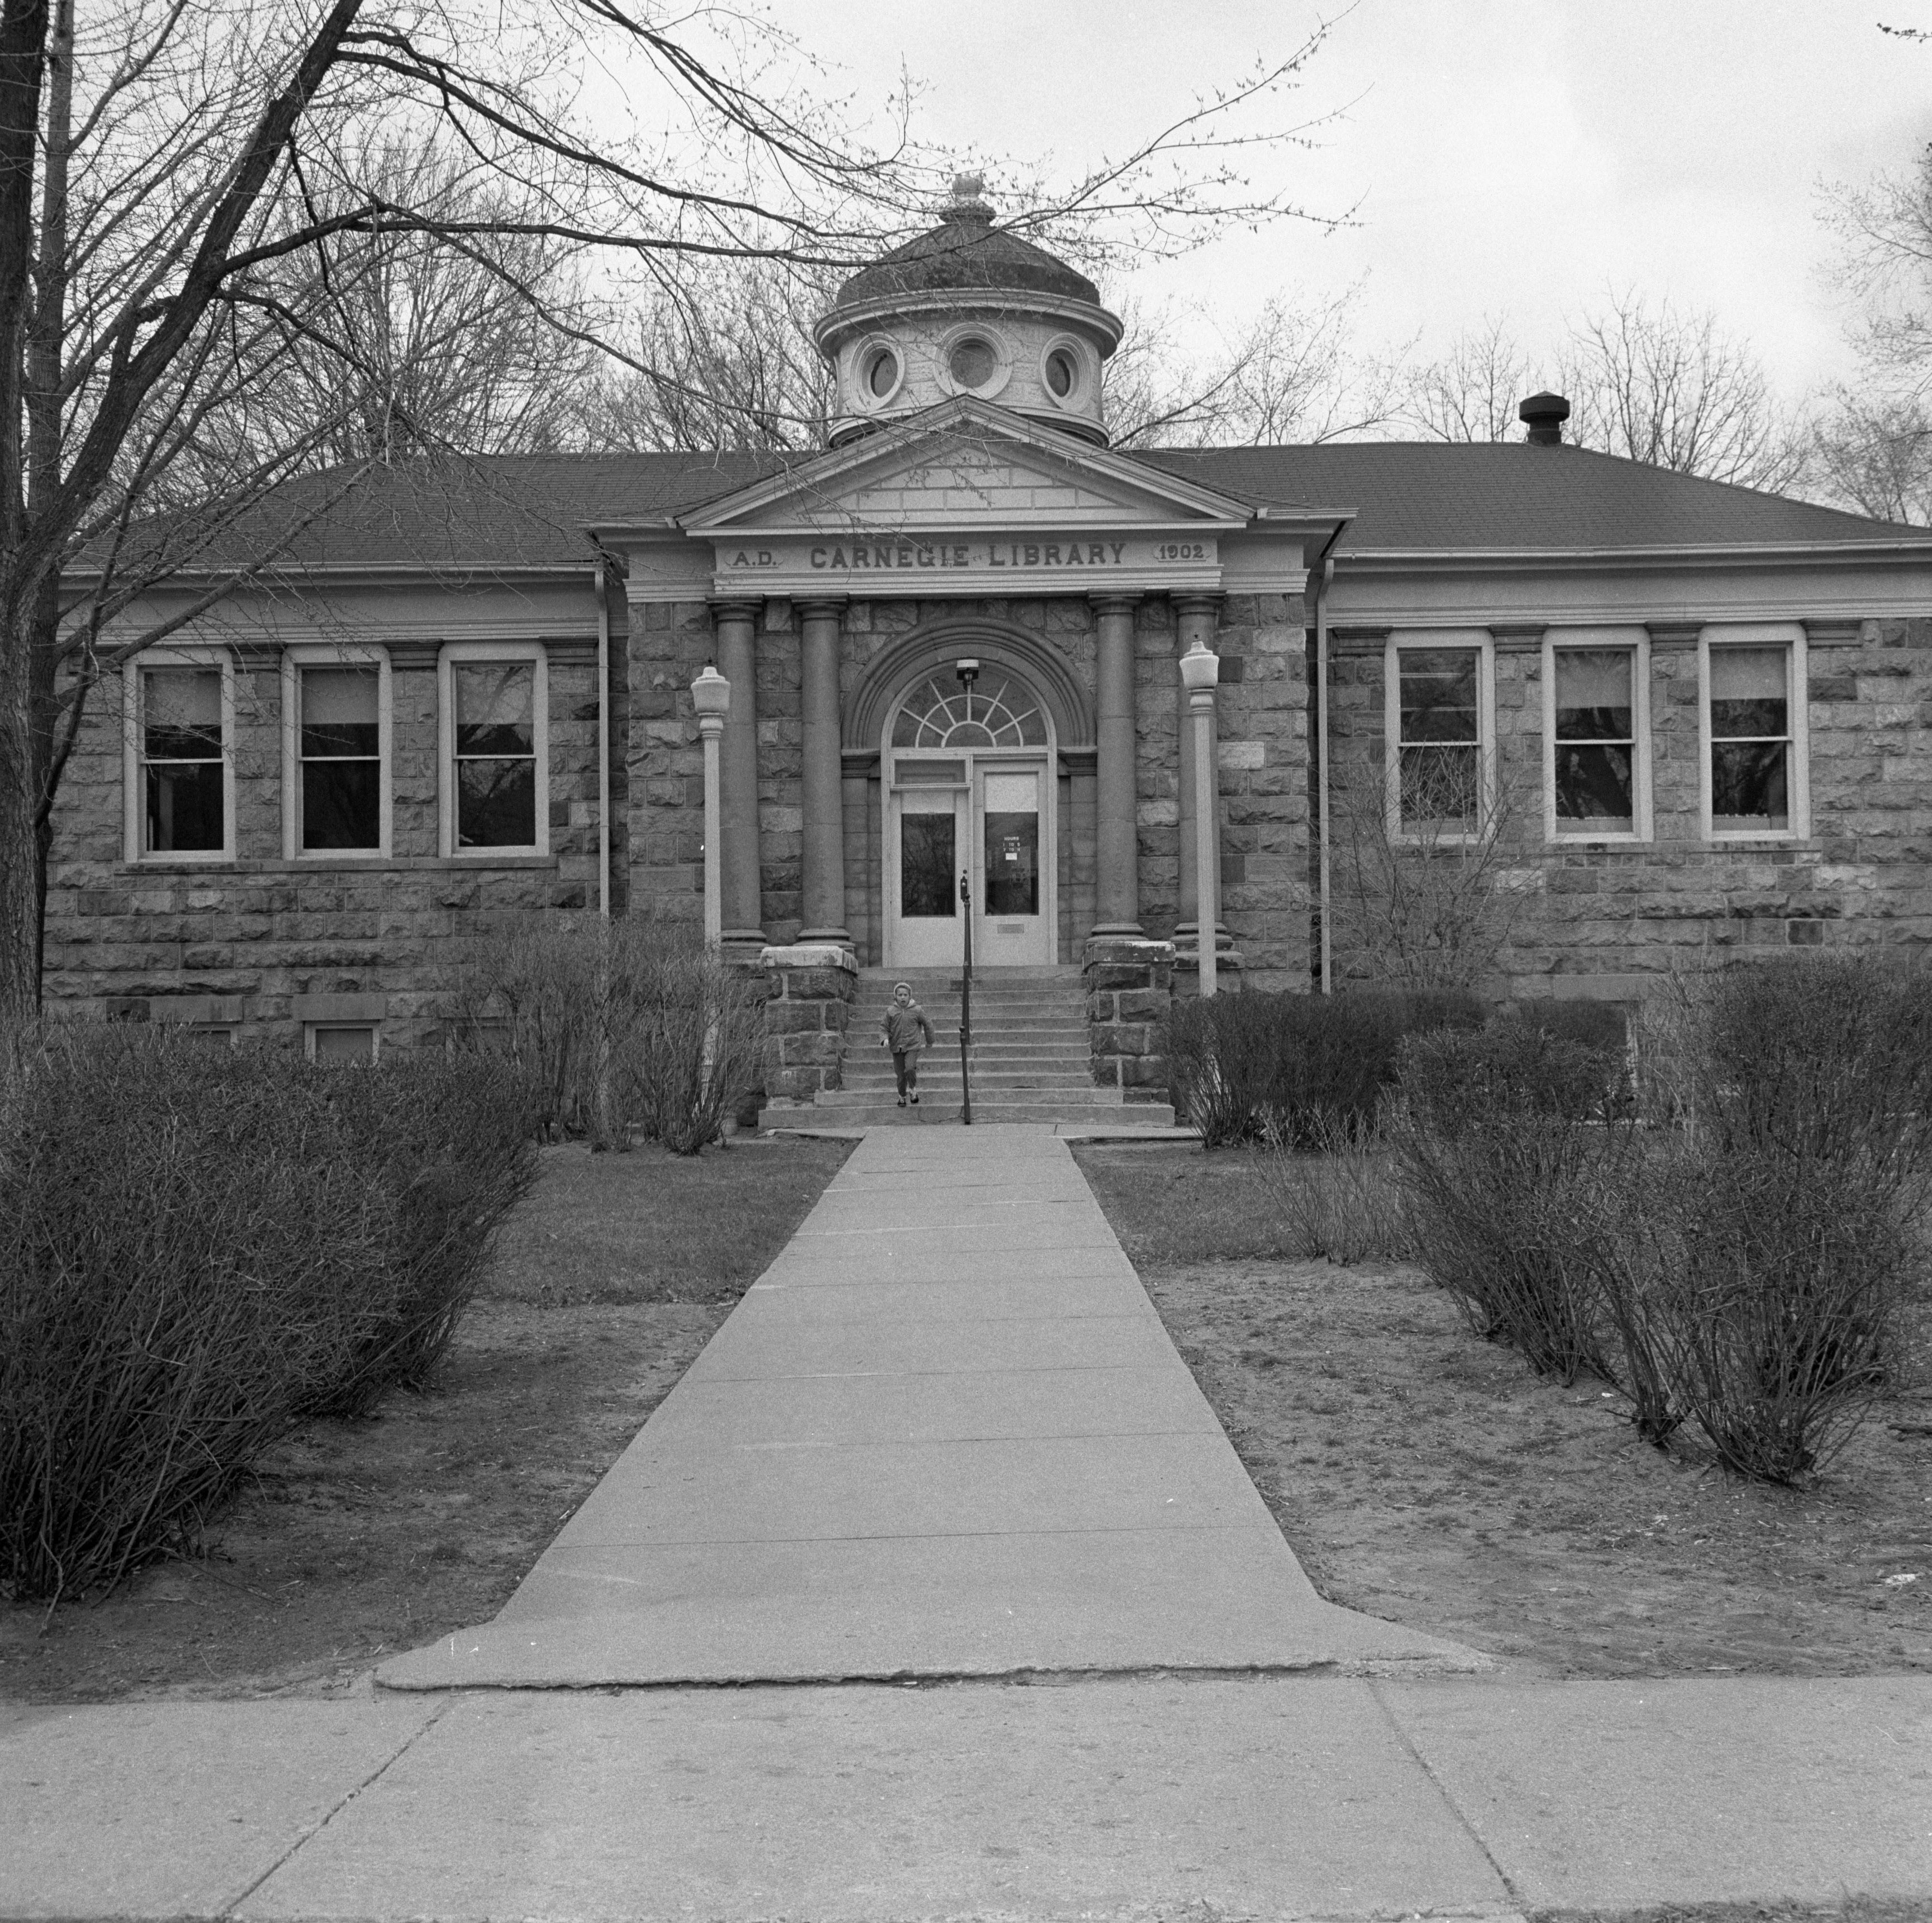 Howell's Carnegie Library, April 1963 image